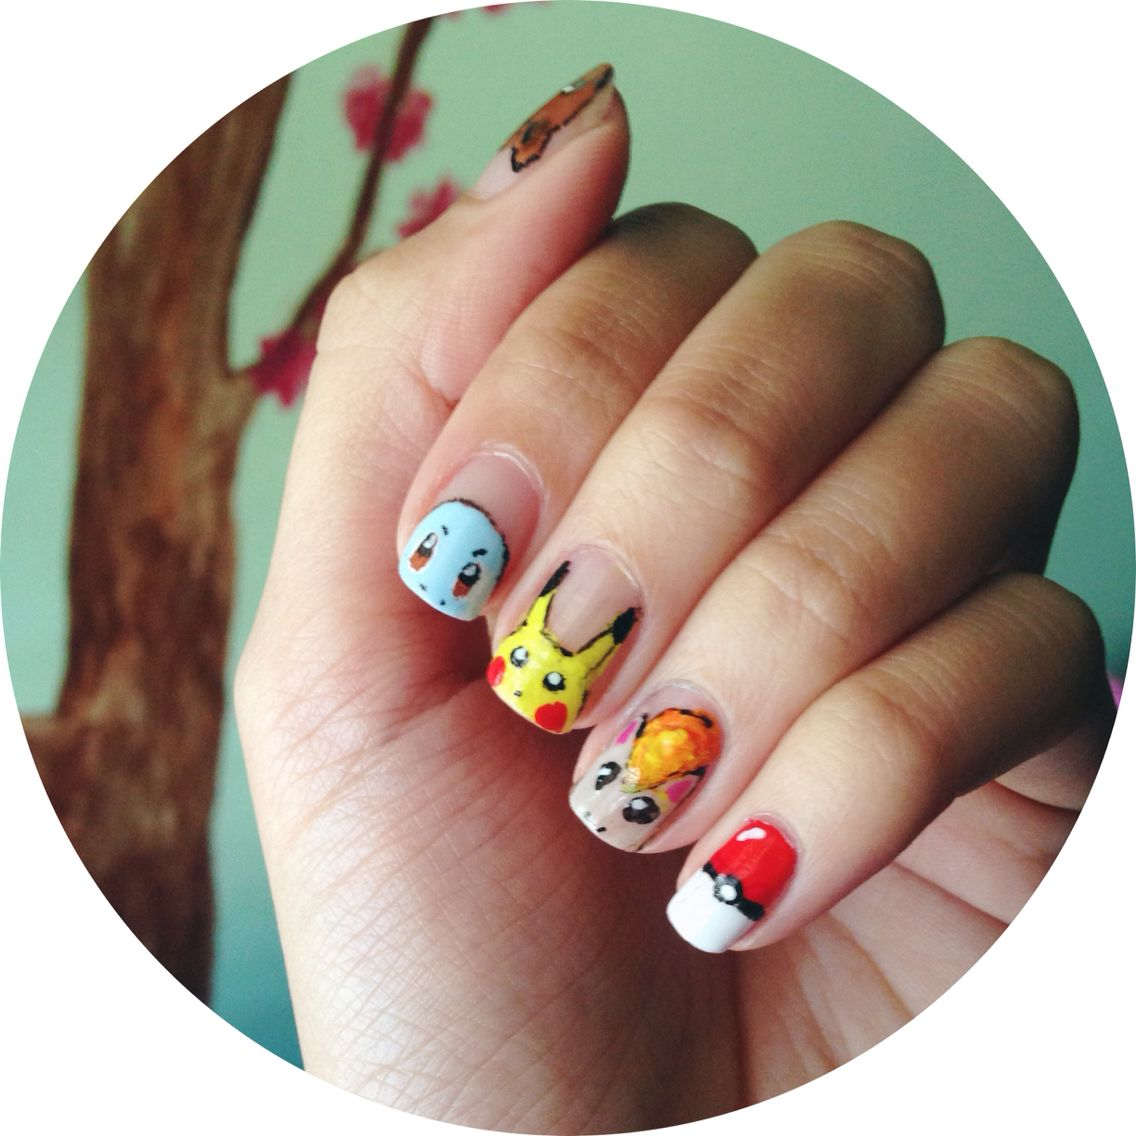 Pokmon Nail Art Part I Ft Vulpix Squirtle Pikachu Ponyta